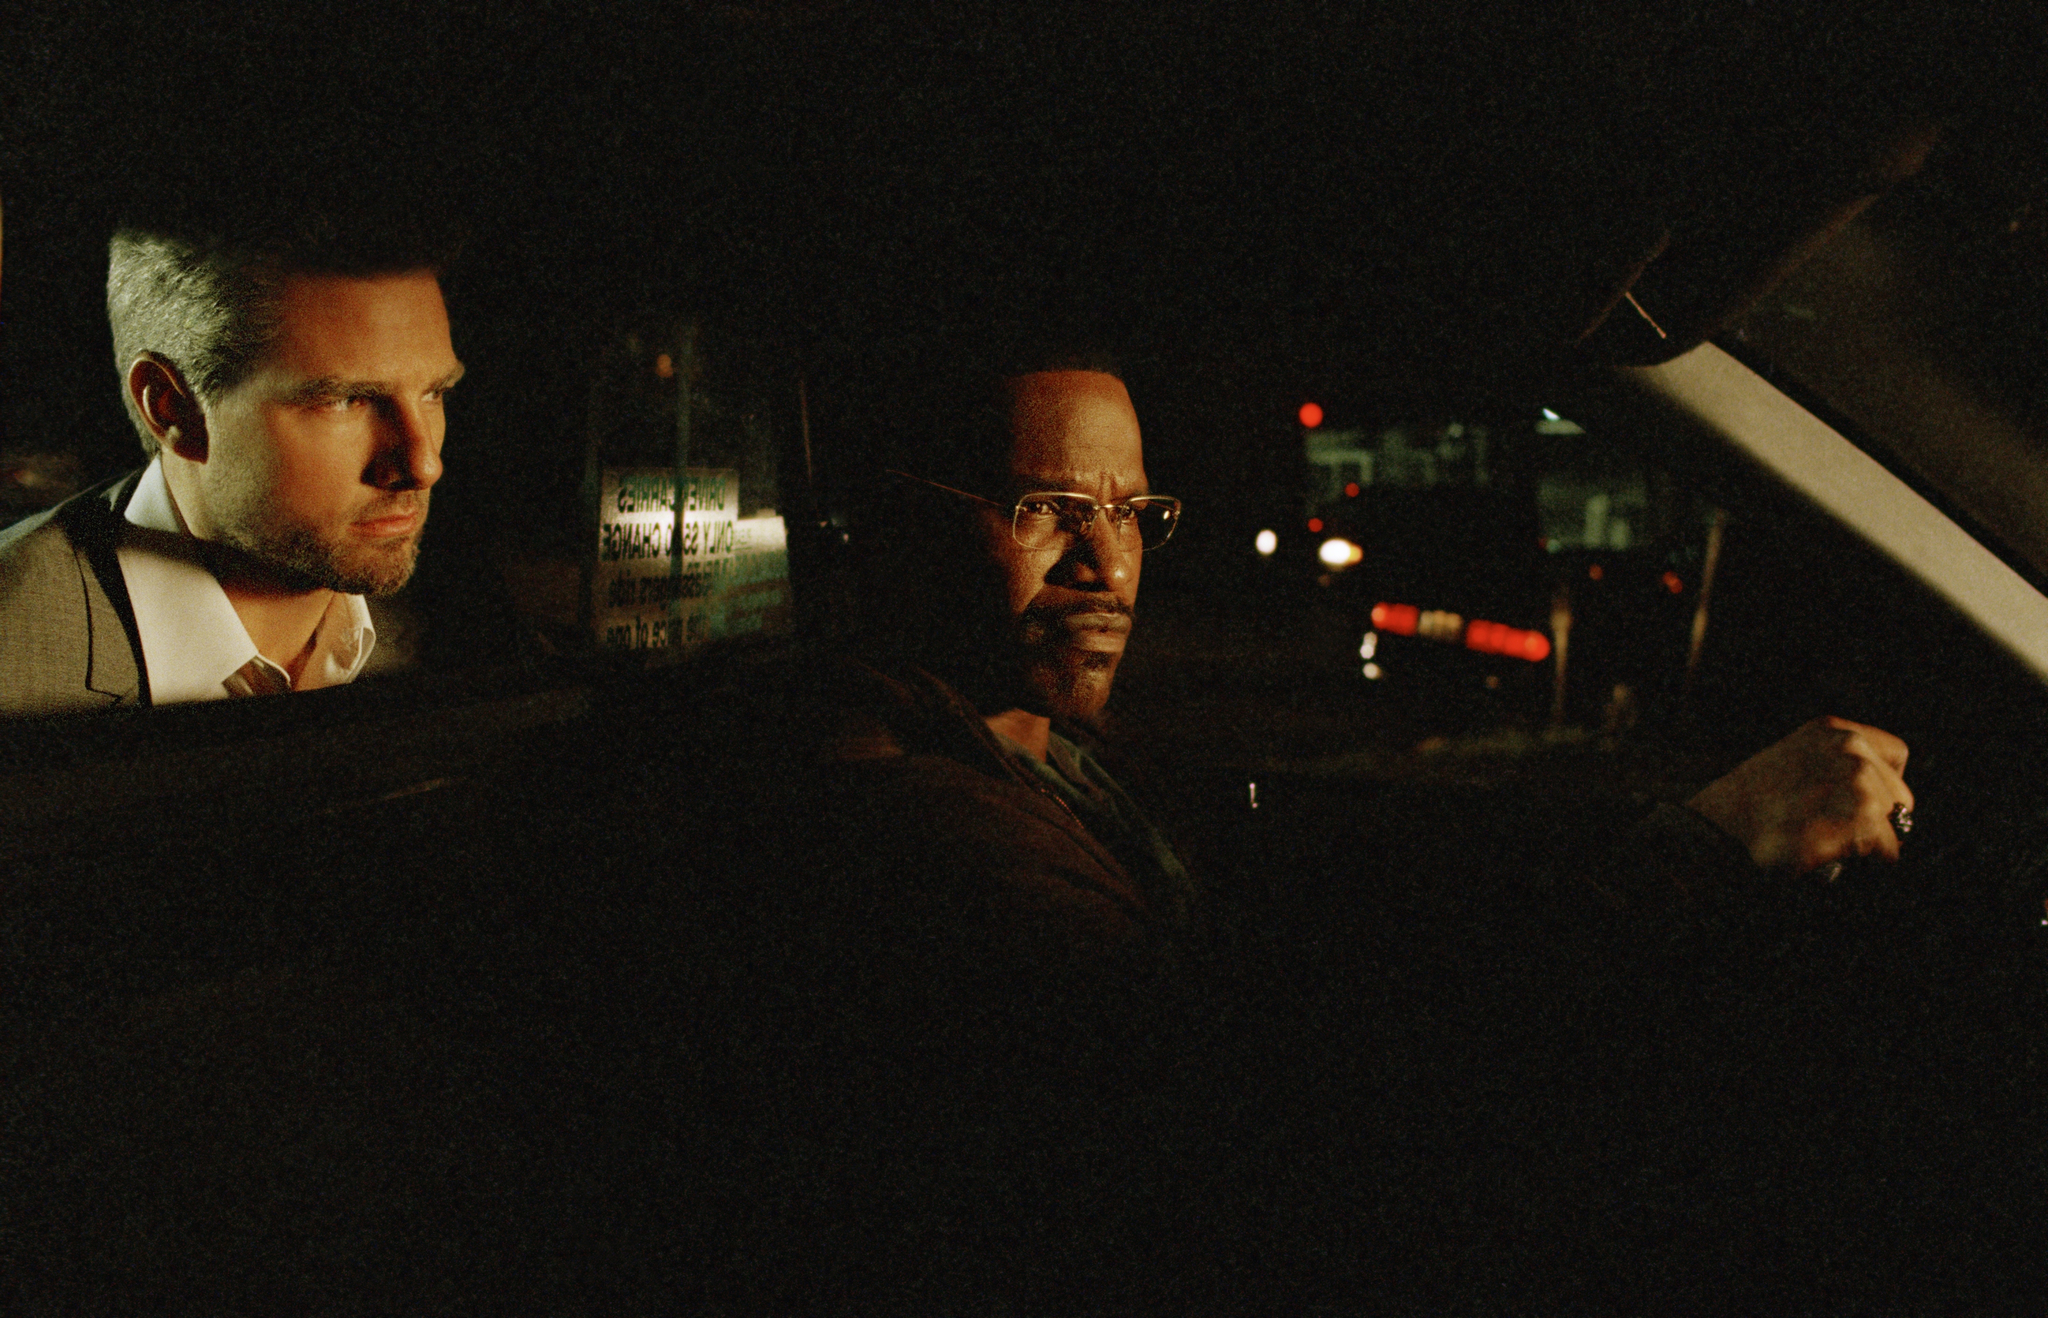 Collateral (2004) - Images - IMDb